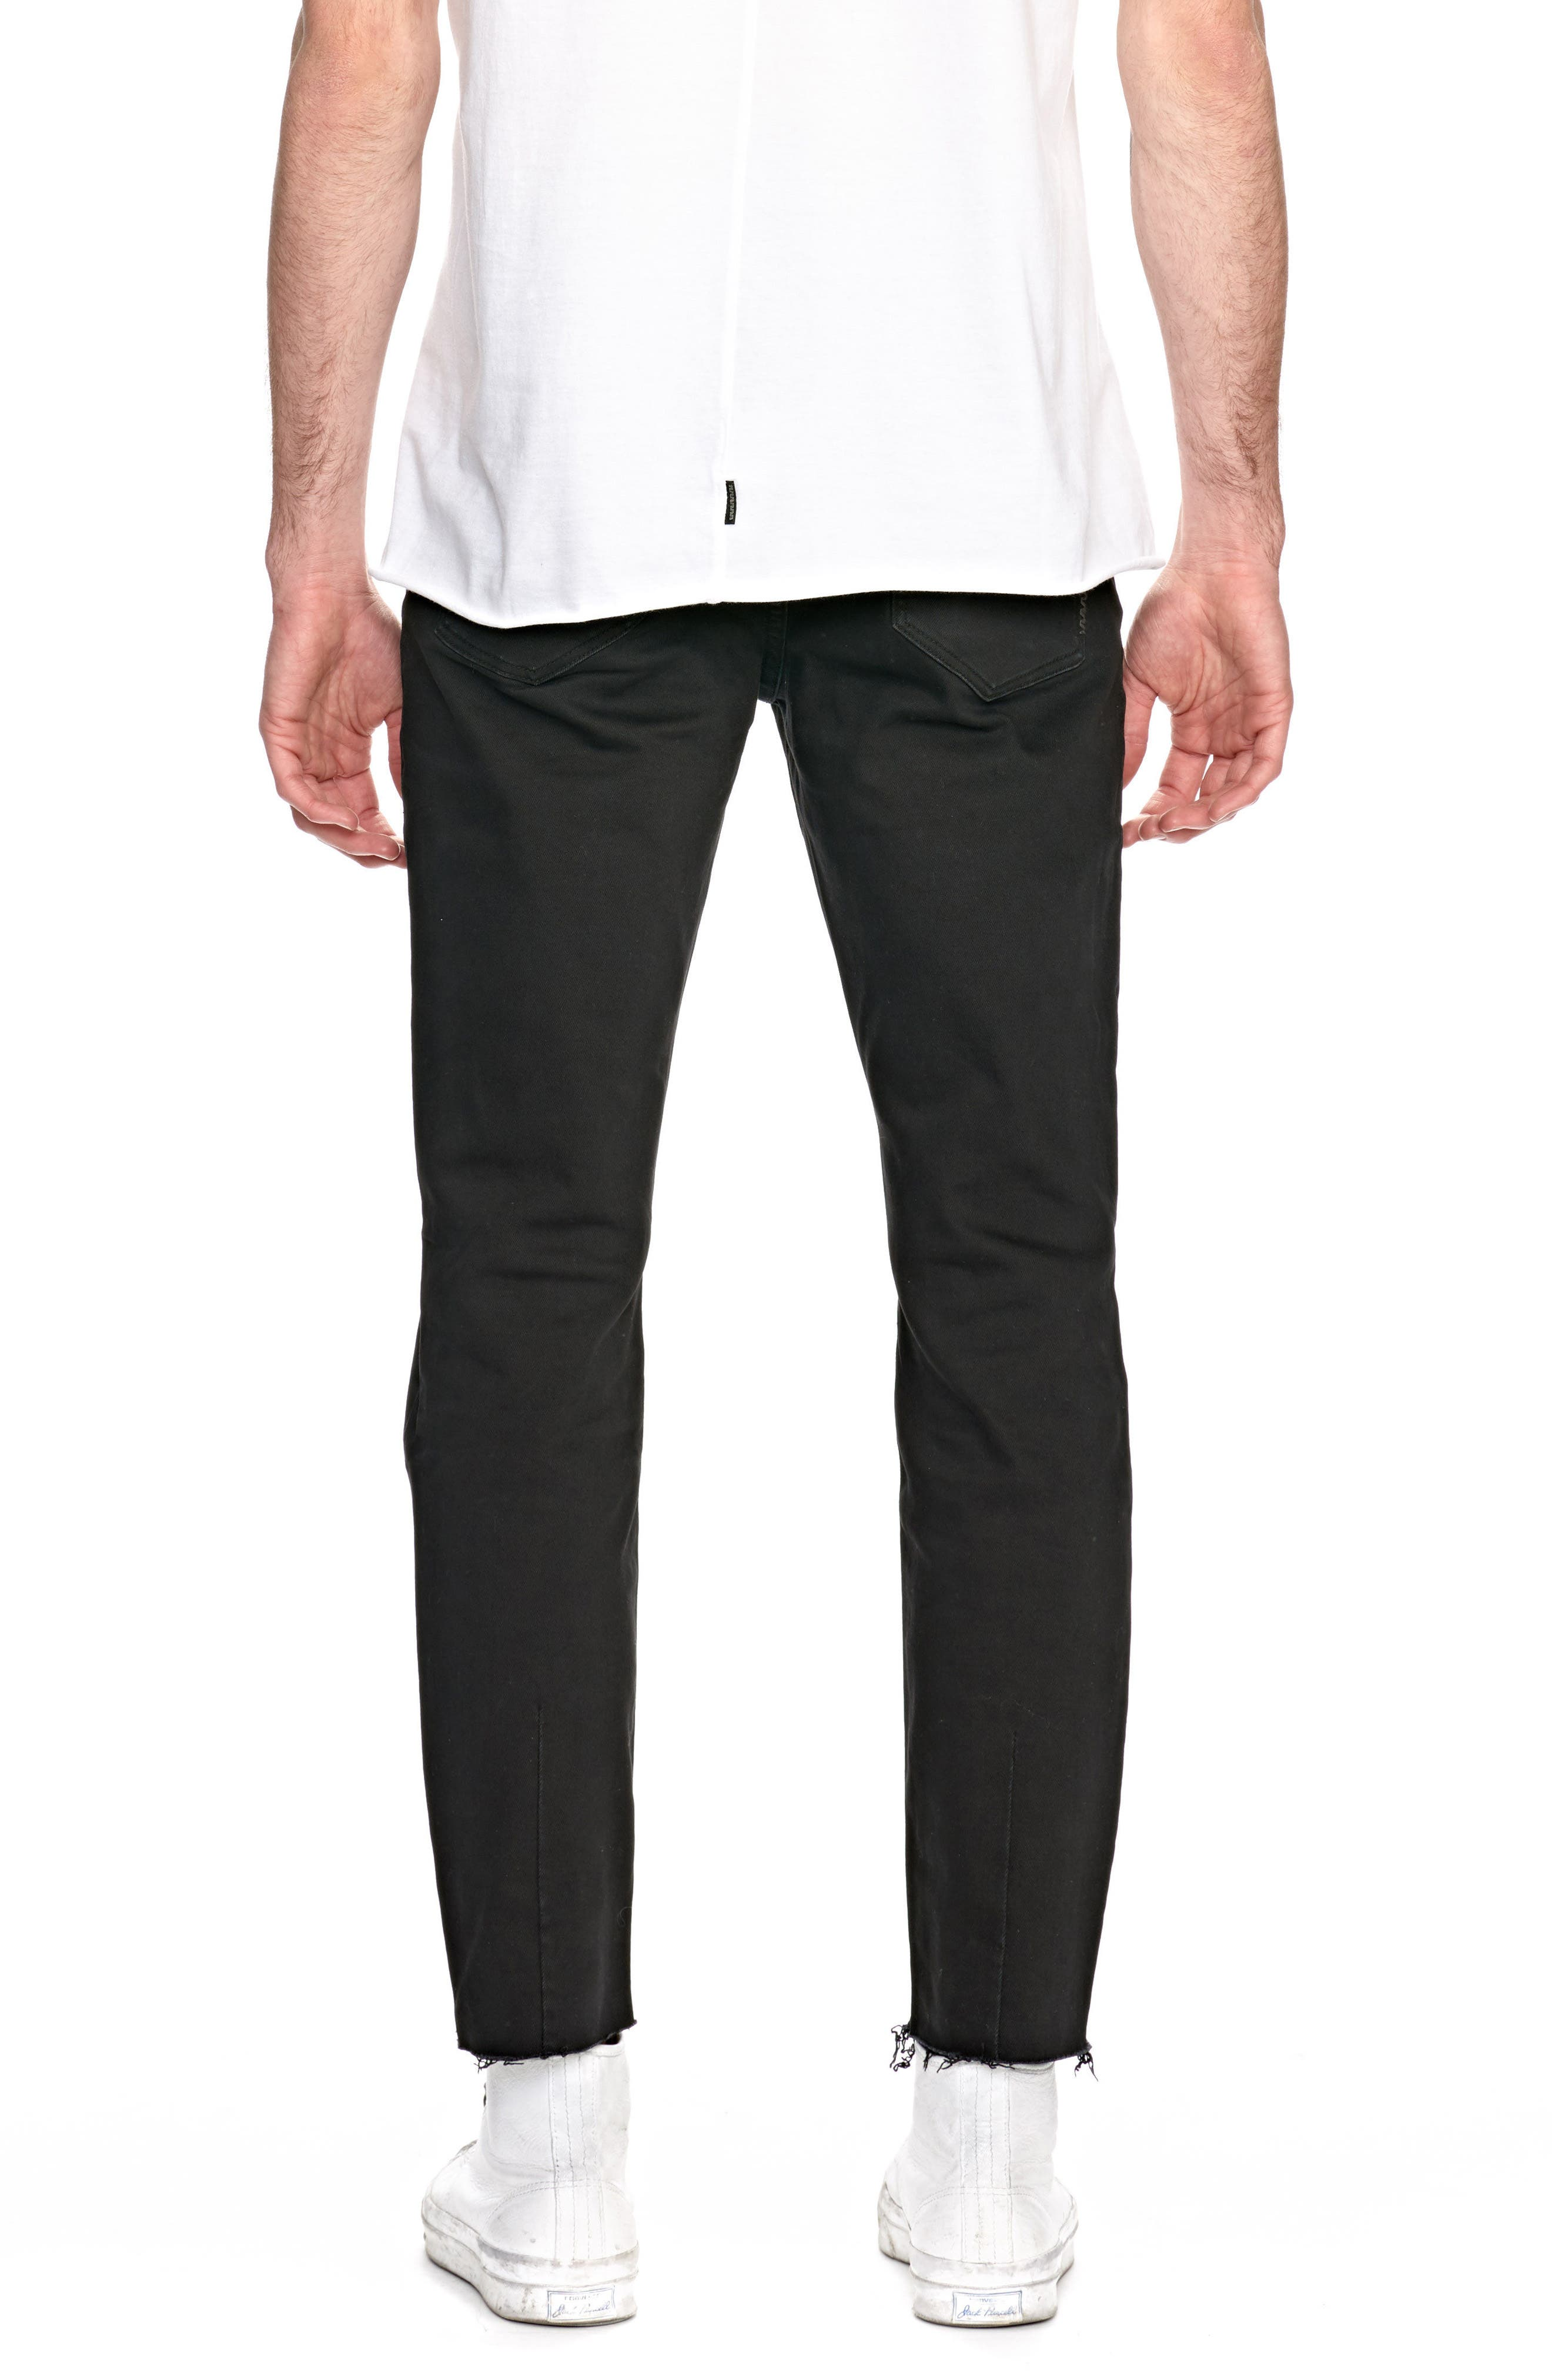 Iggy Skinny Fit Jeans,                             Alternate thumbnail 2, color,                             001